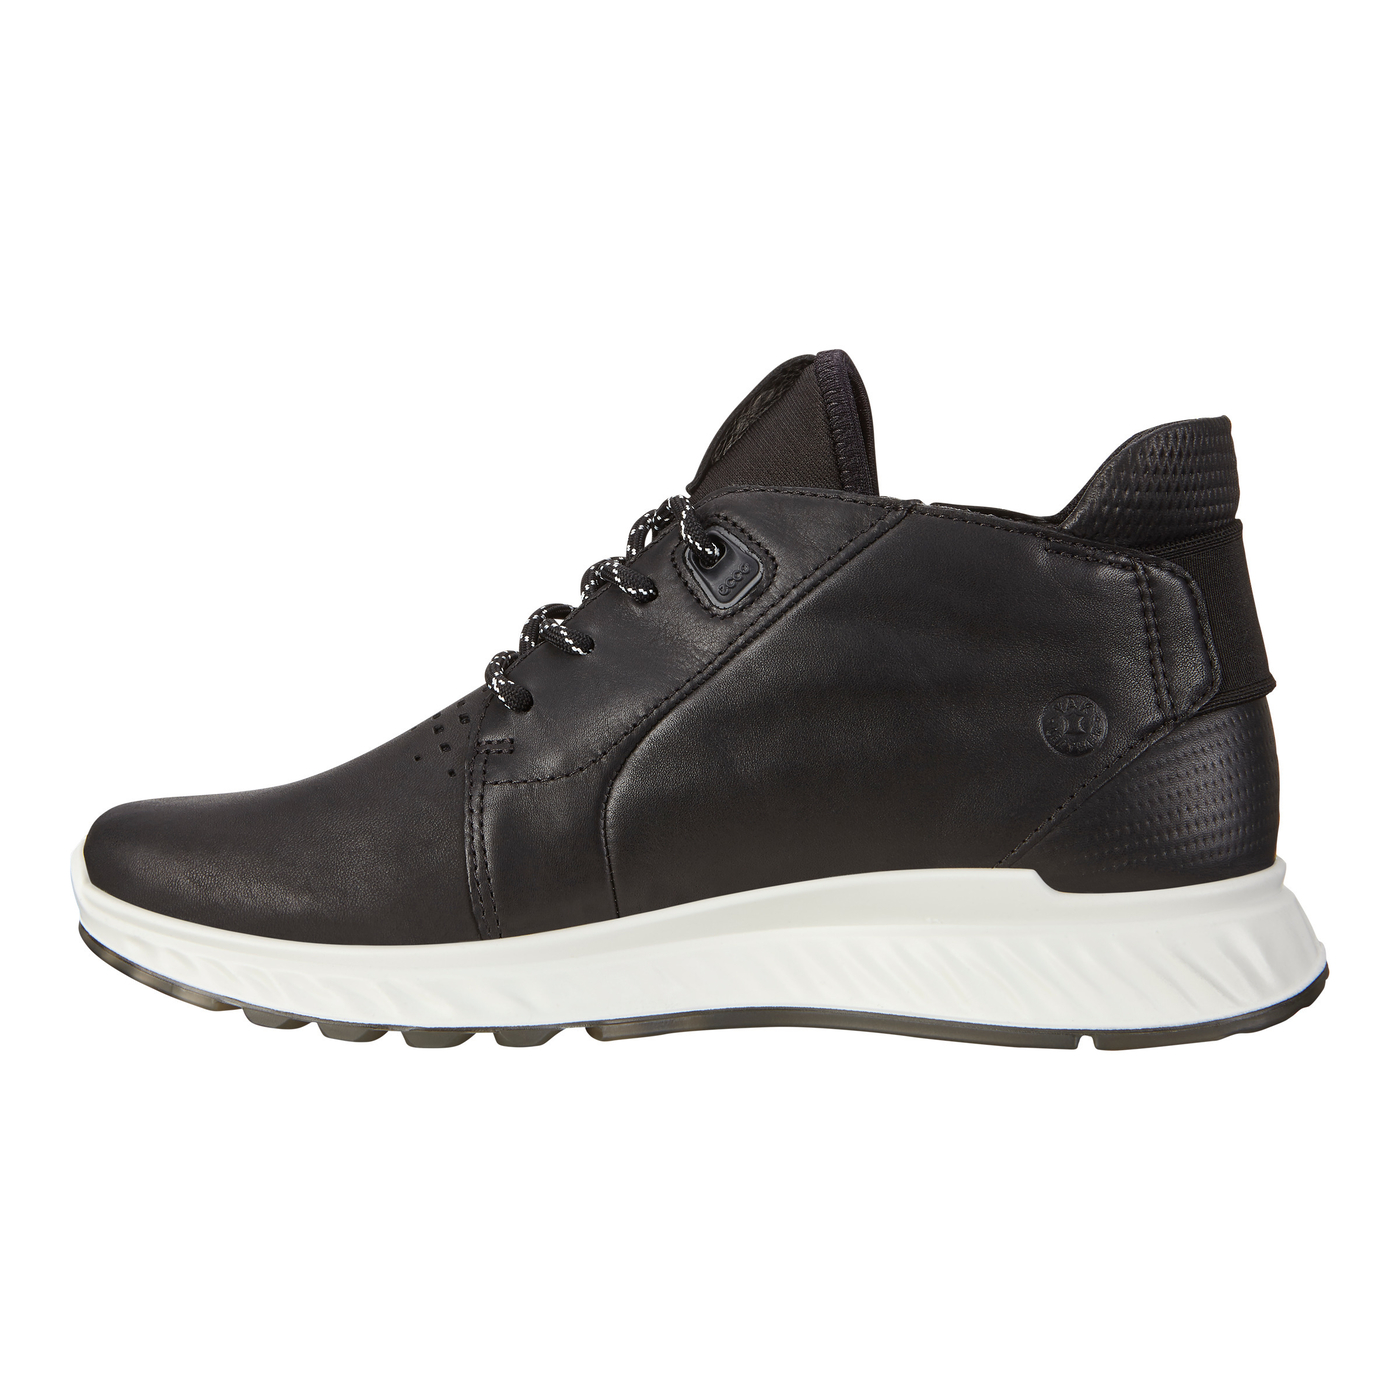 ECCO ST1 Womens High Cut Sneaker Lace